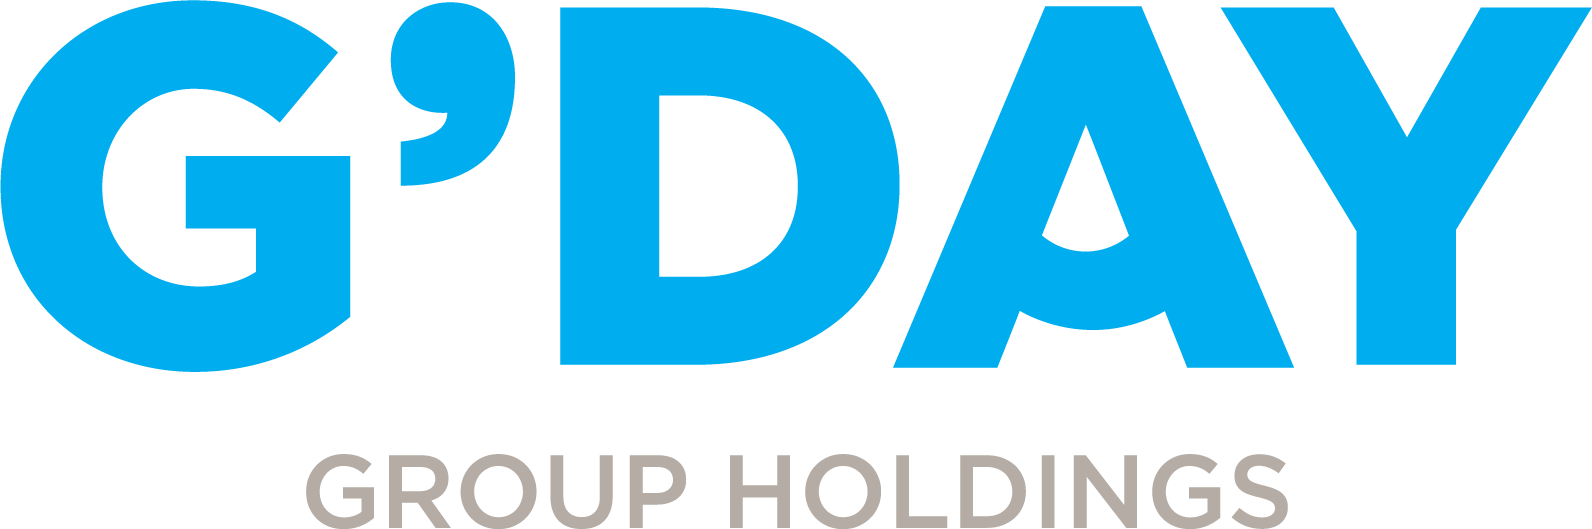 Gday group Logo